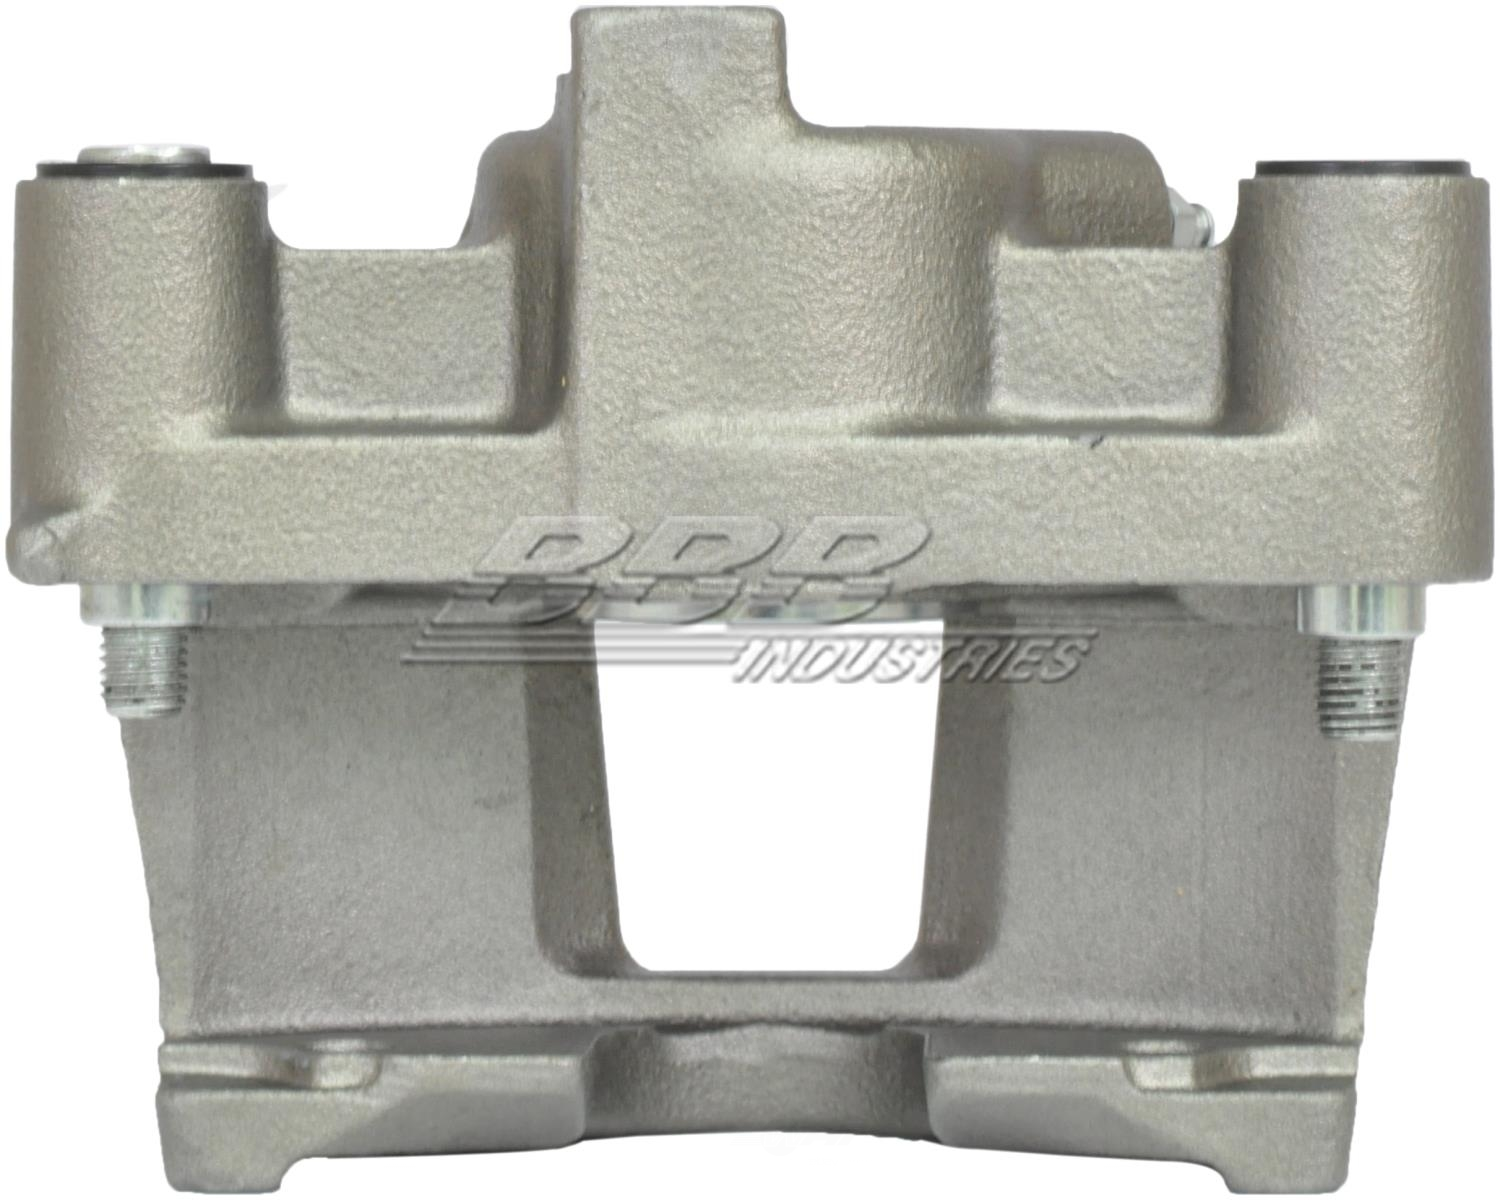 BBB INDUSTRIES - Reman Caliper w/ Installation Hardware - BBA 97-17274B